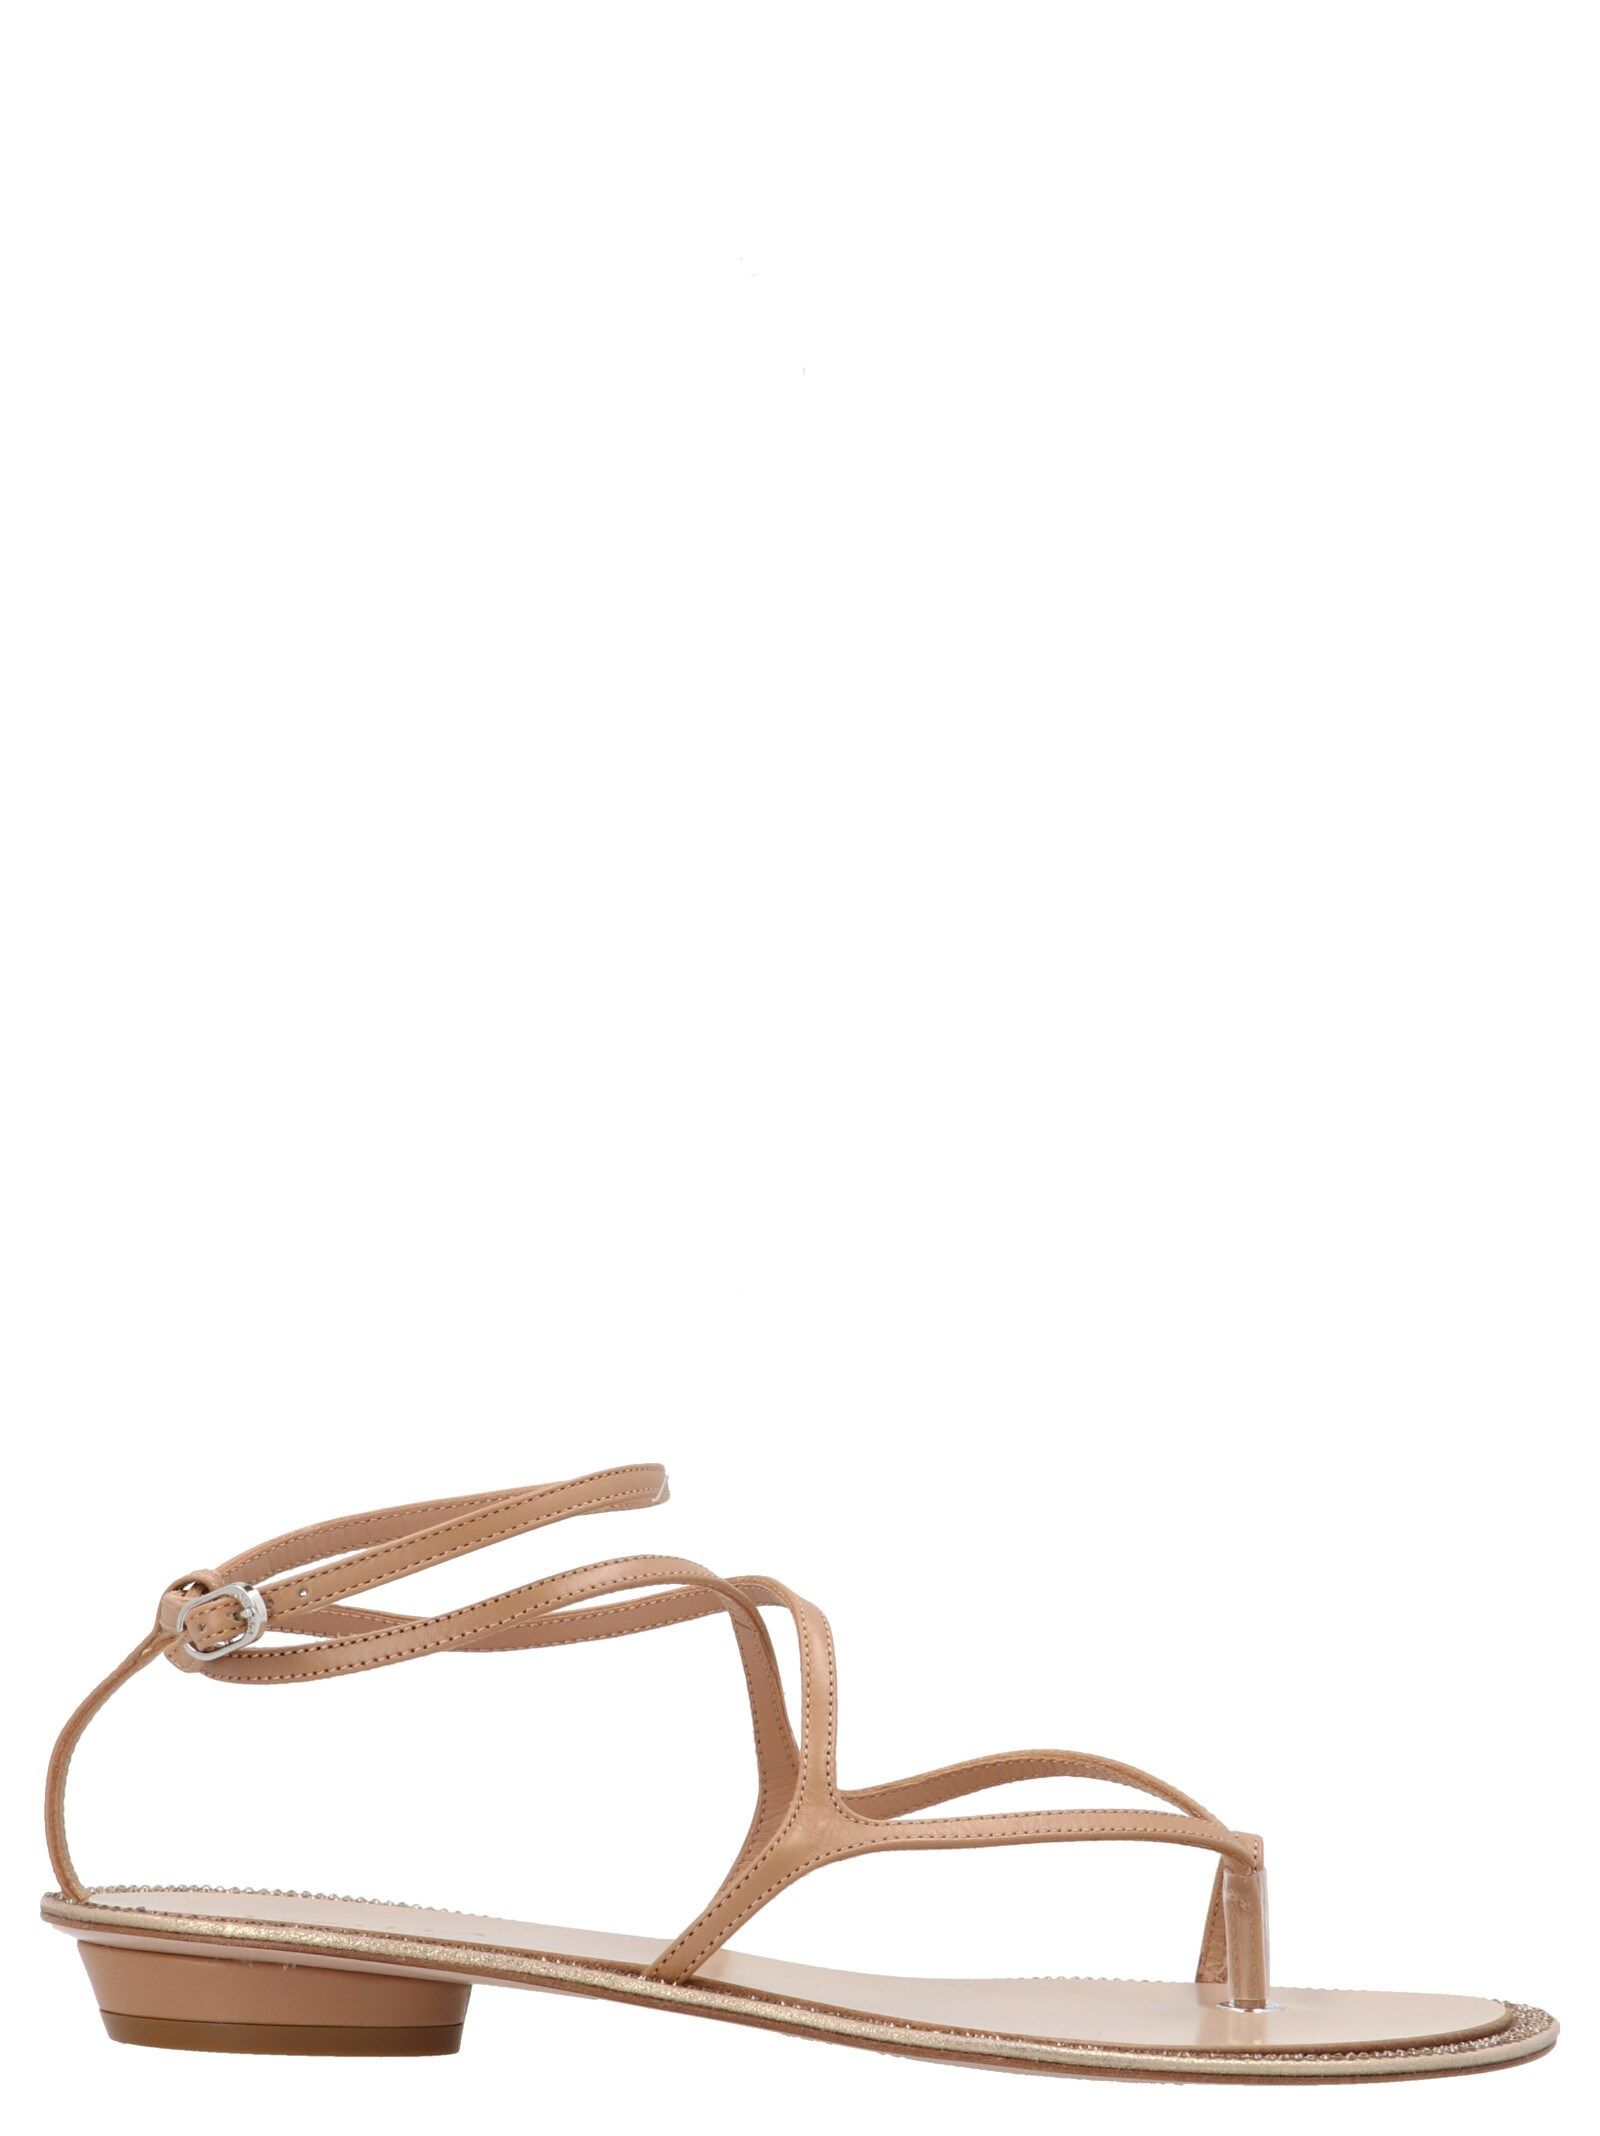 Le Silla LE SILLA WOMEN'S 1204S020R4PPMIN028 BROWN OTHER MATERIALS SANDALS